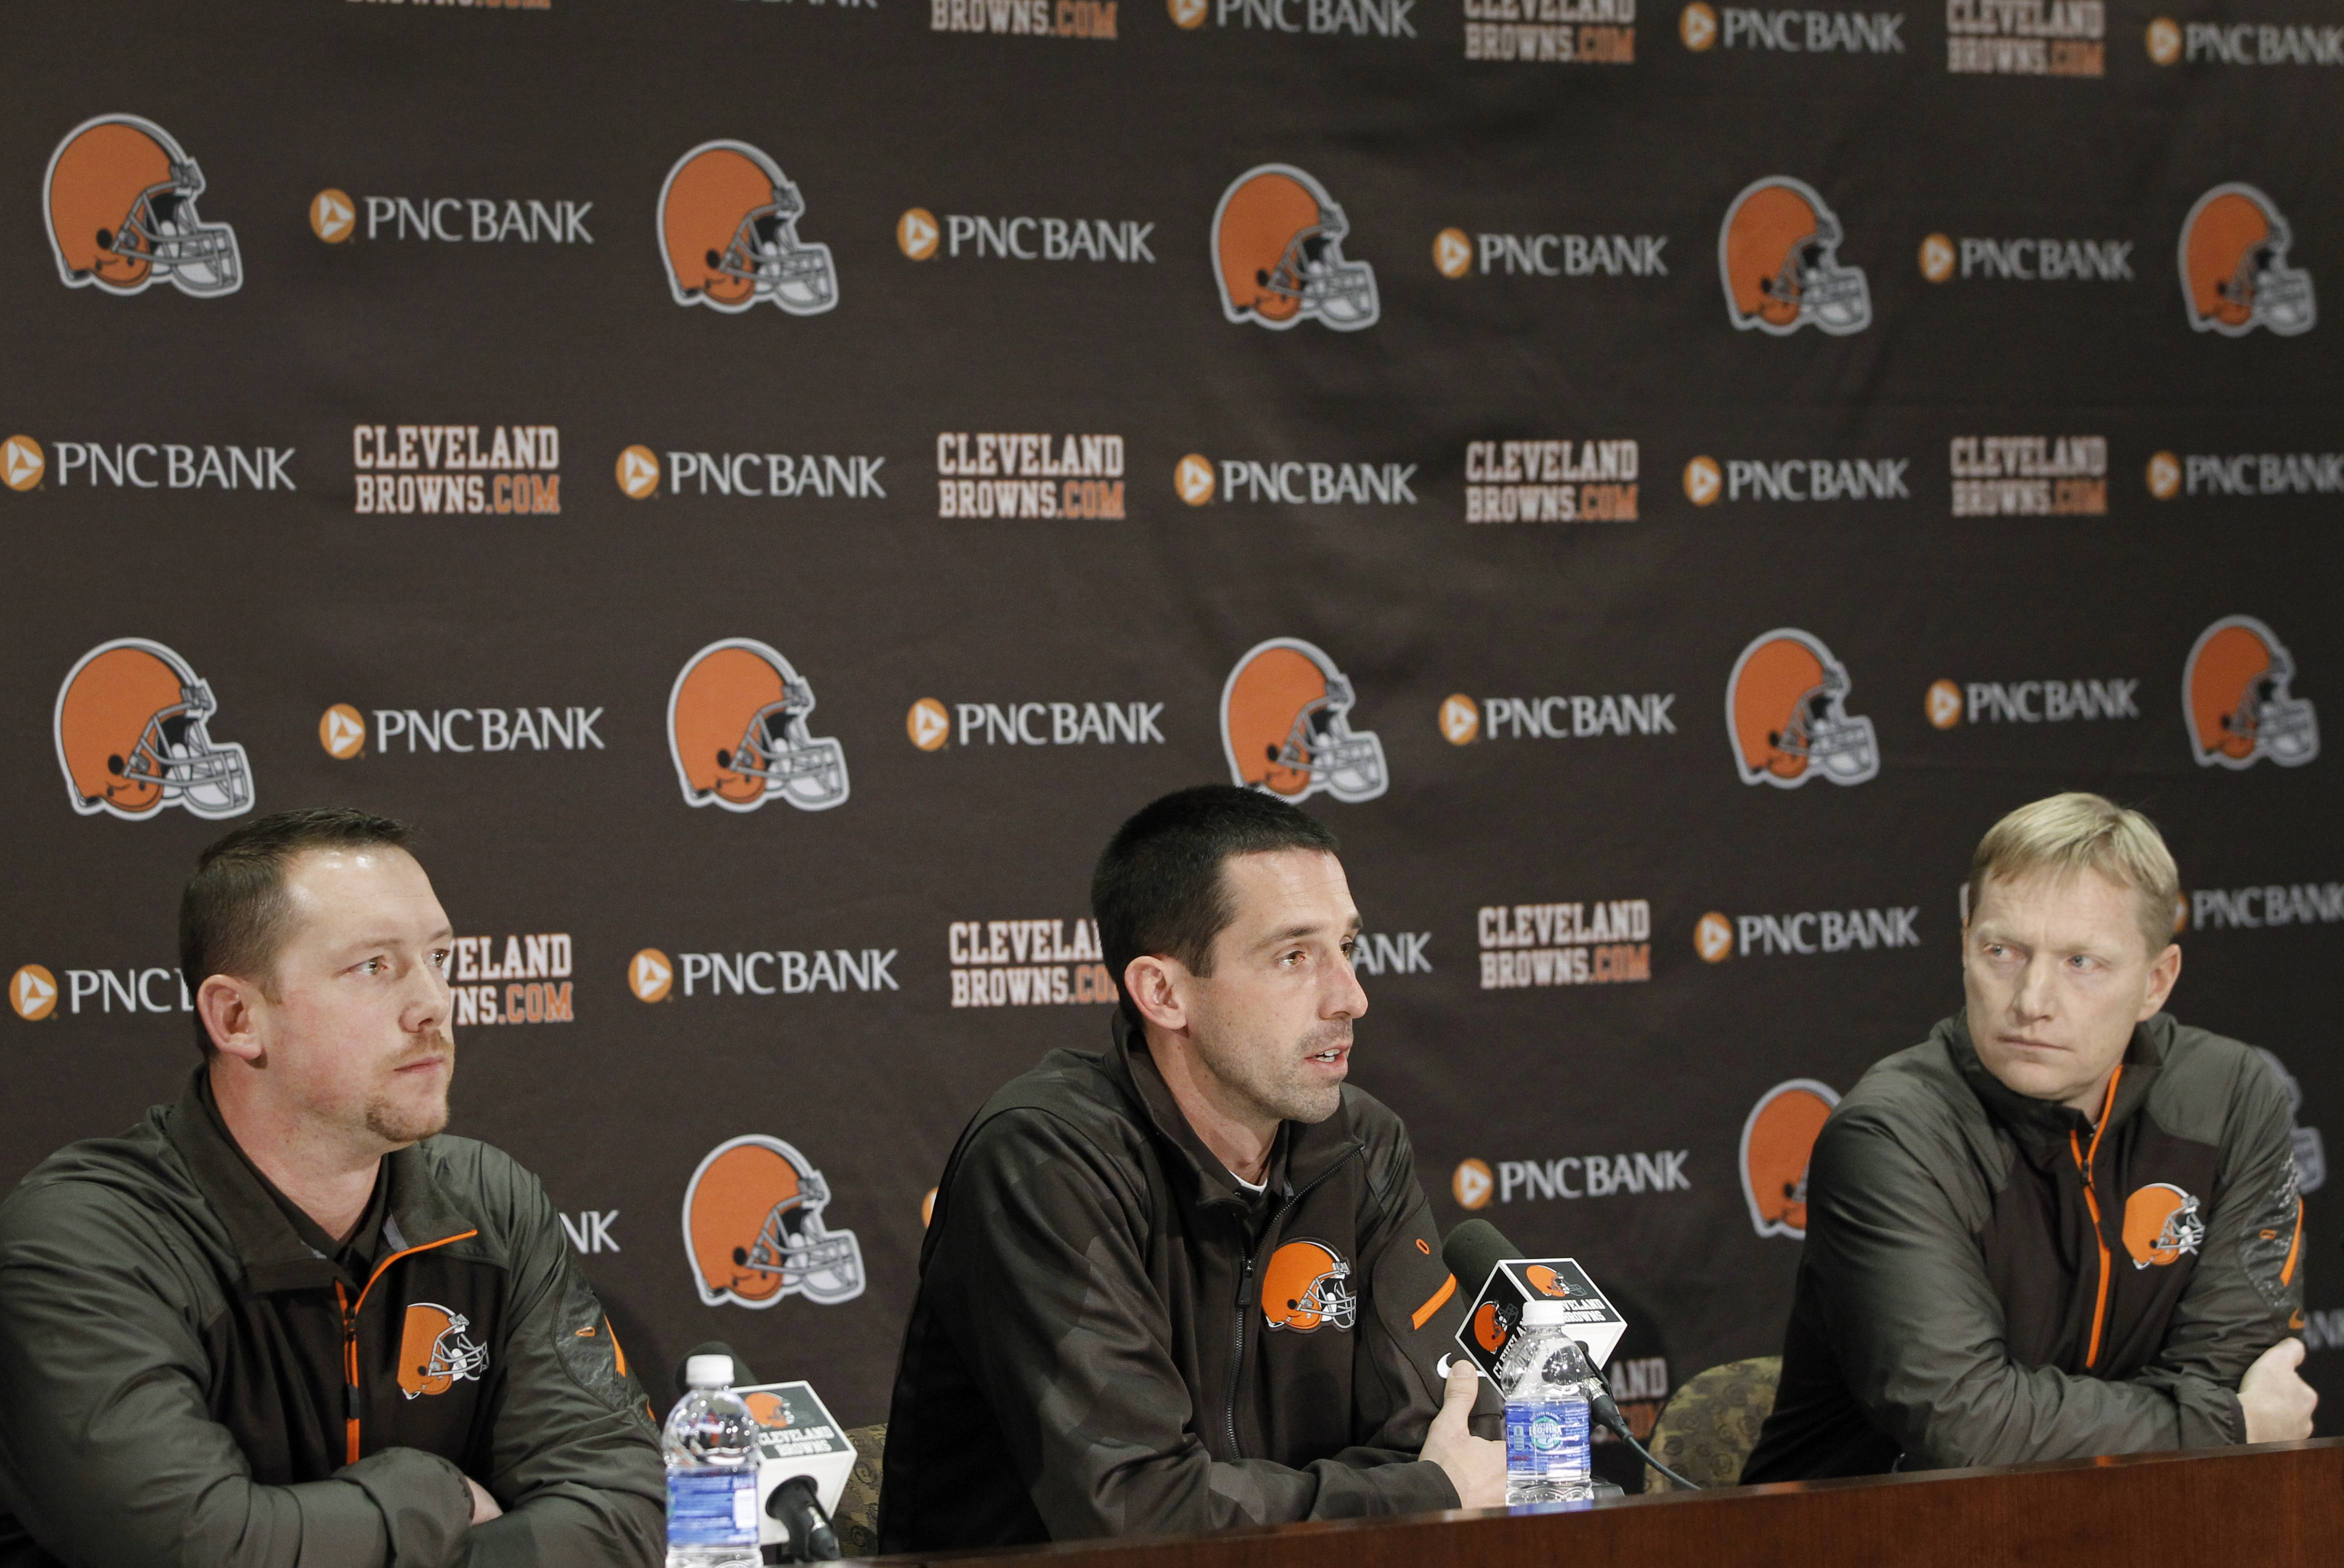 From left to right, Cleveland Browns defensive coordinator Jim O'Neil, offensive coordinator Kyle Shanahan and special teams coordinator Chris Tabor answer questions during an NFL football news conference on Thursday, Feb. 6, 2014, at the team's training facility in Berea, Ohio. (AP Photo/The Plain Dealer, Lonnie Timmons III) MANDATORY CREDIT; NO SALES